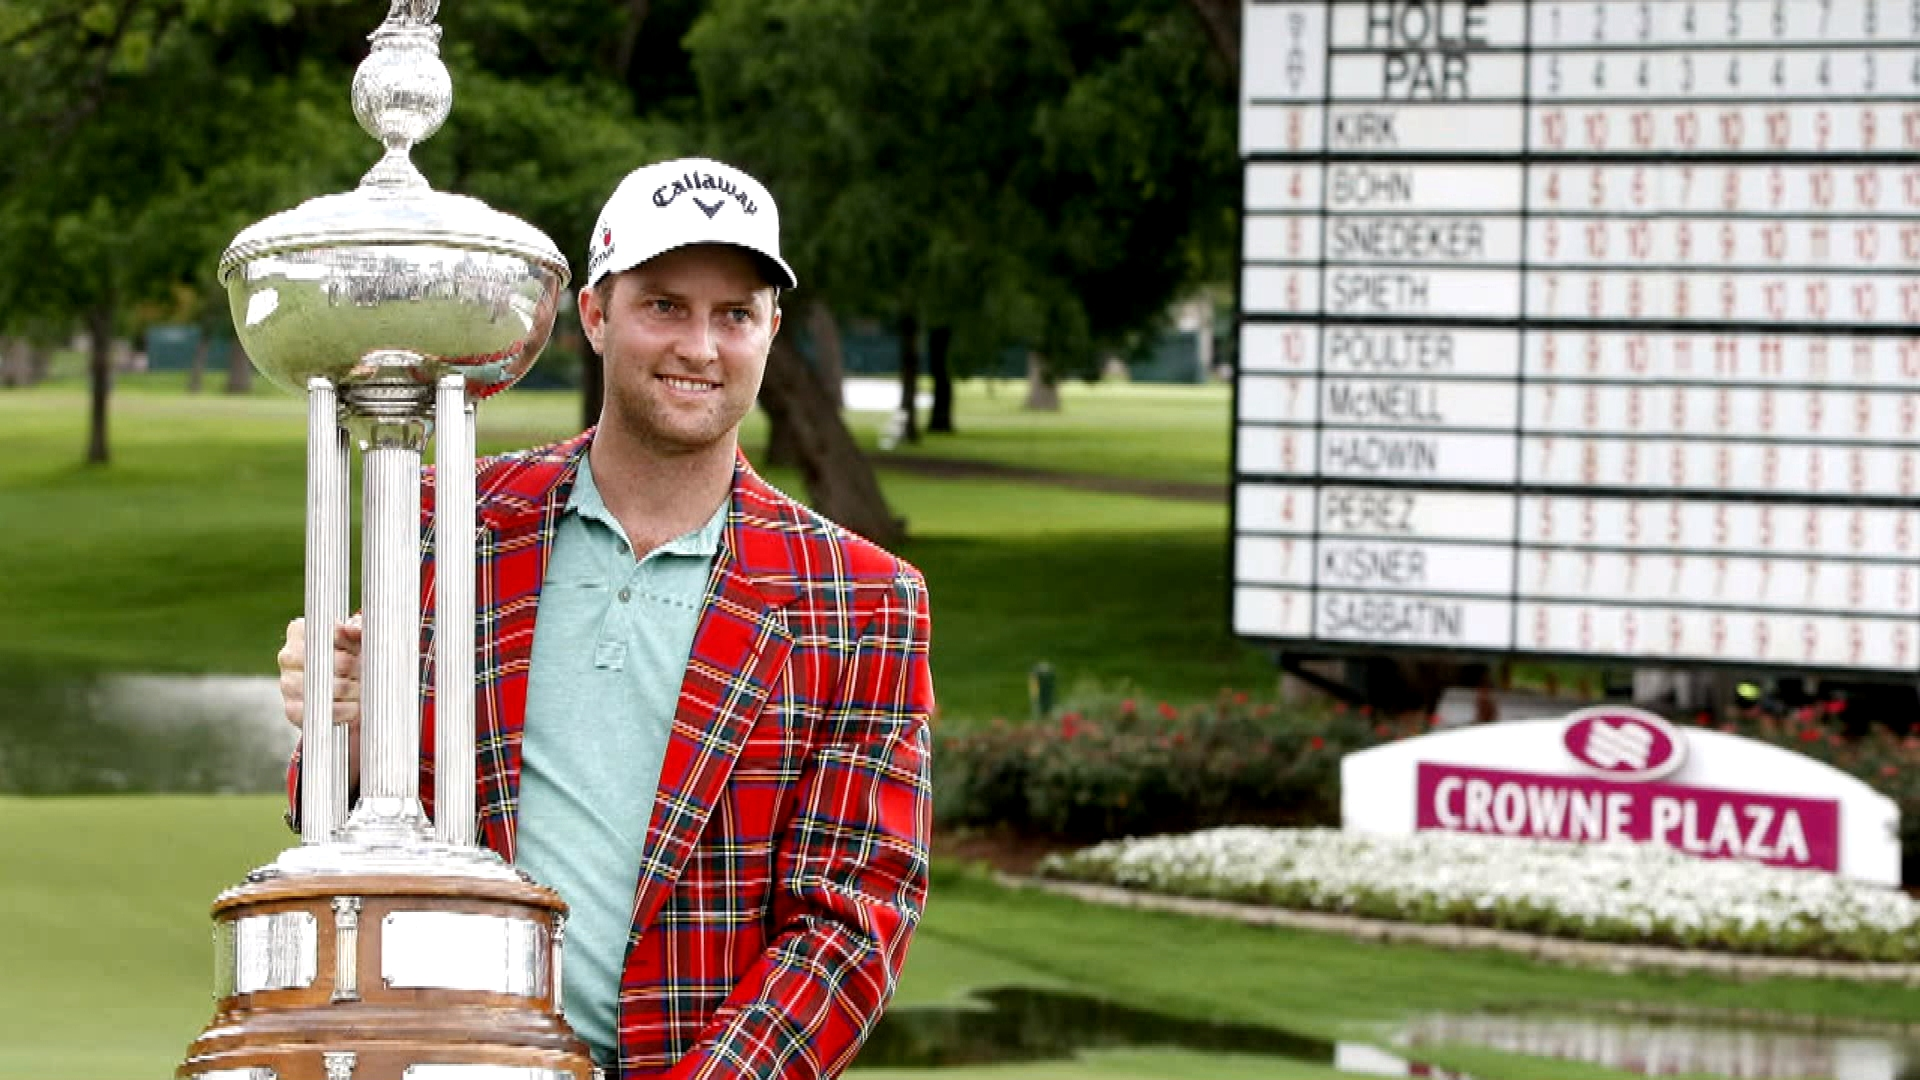 Crowne Plaza Invitational At Colonial Videos Photos Golf Channel